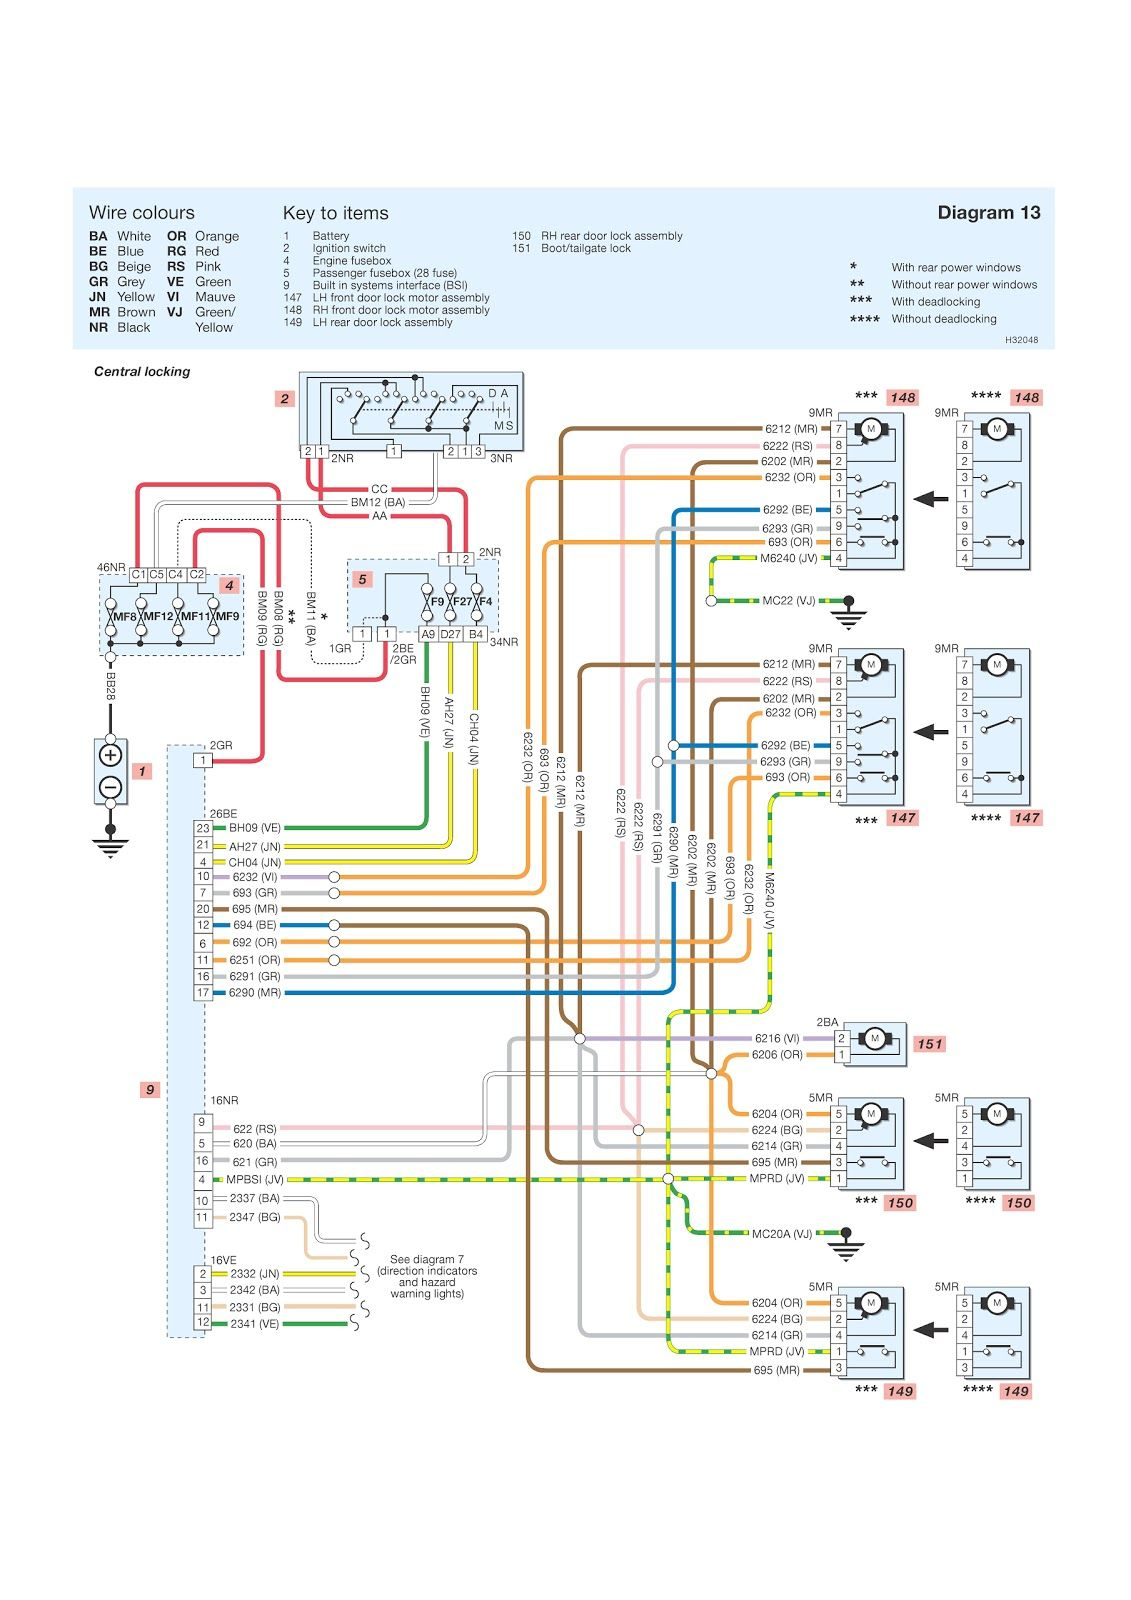 wiring diagrams peugeot manual e book peugeot 307 radio wiring diagram peugeot 307 wiring diagram [ 1131 x 1600 Pixel ]